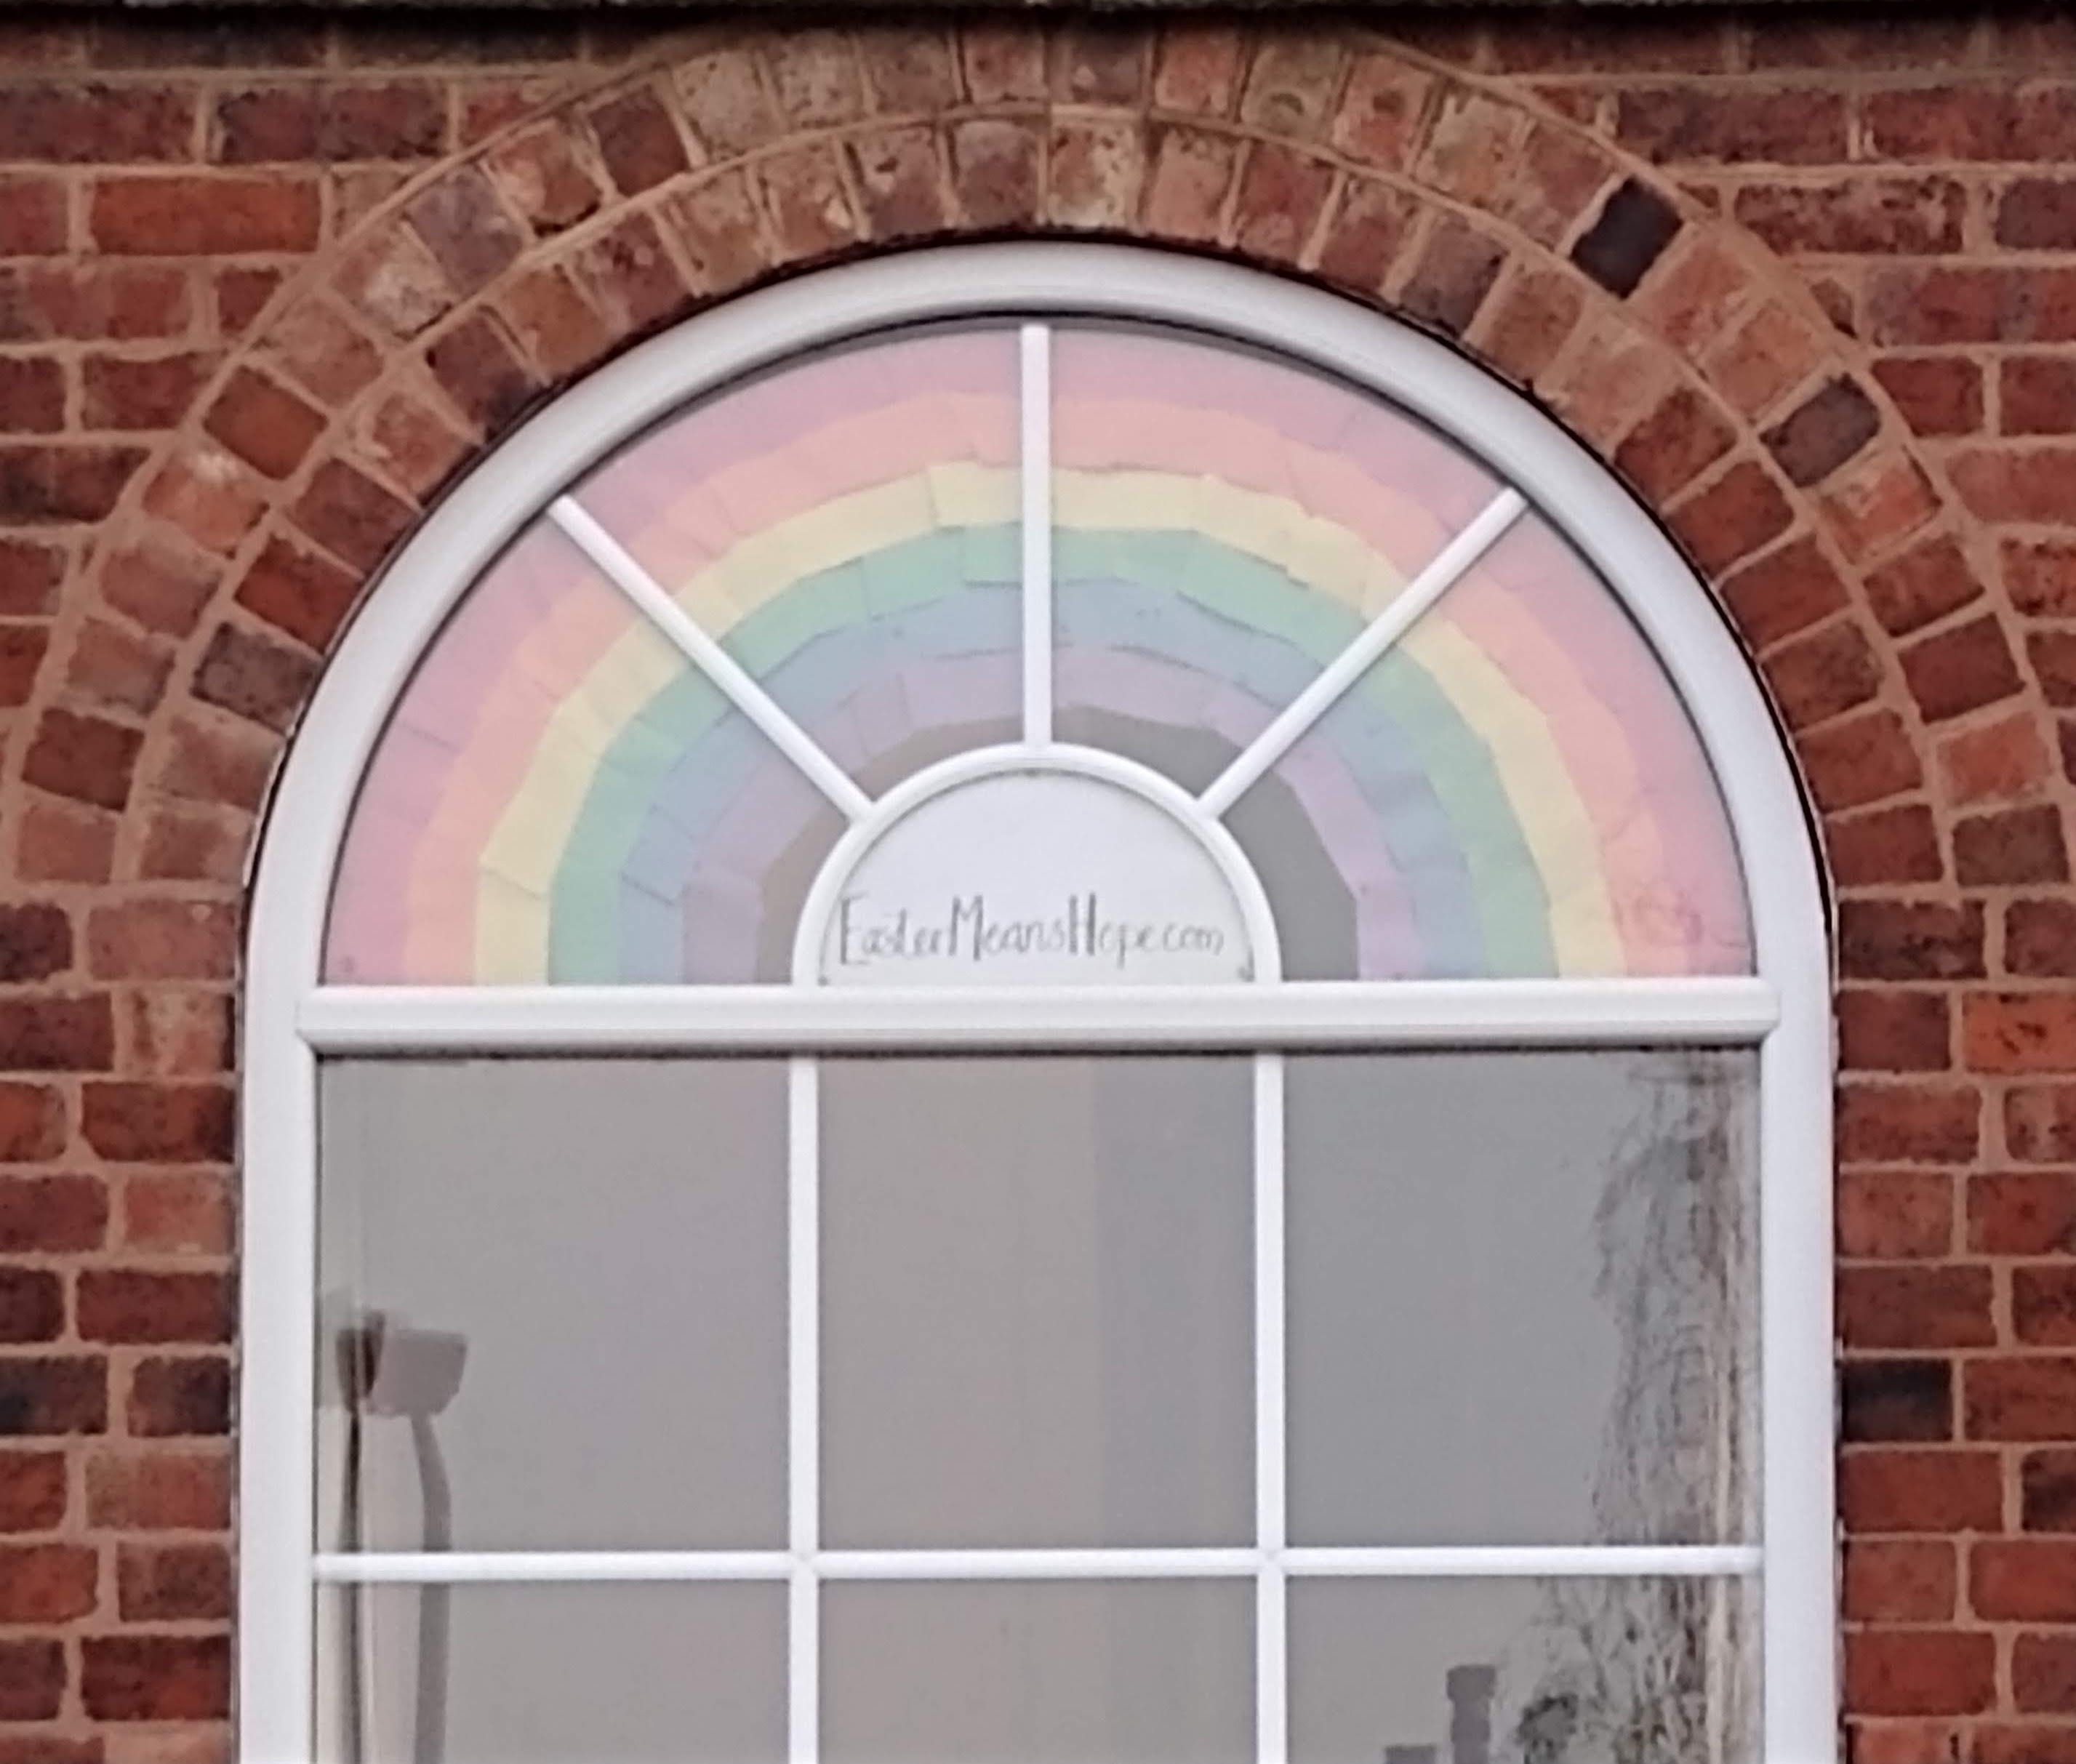 Paper rainbow and 'EasterMeansHope.com' in arched window